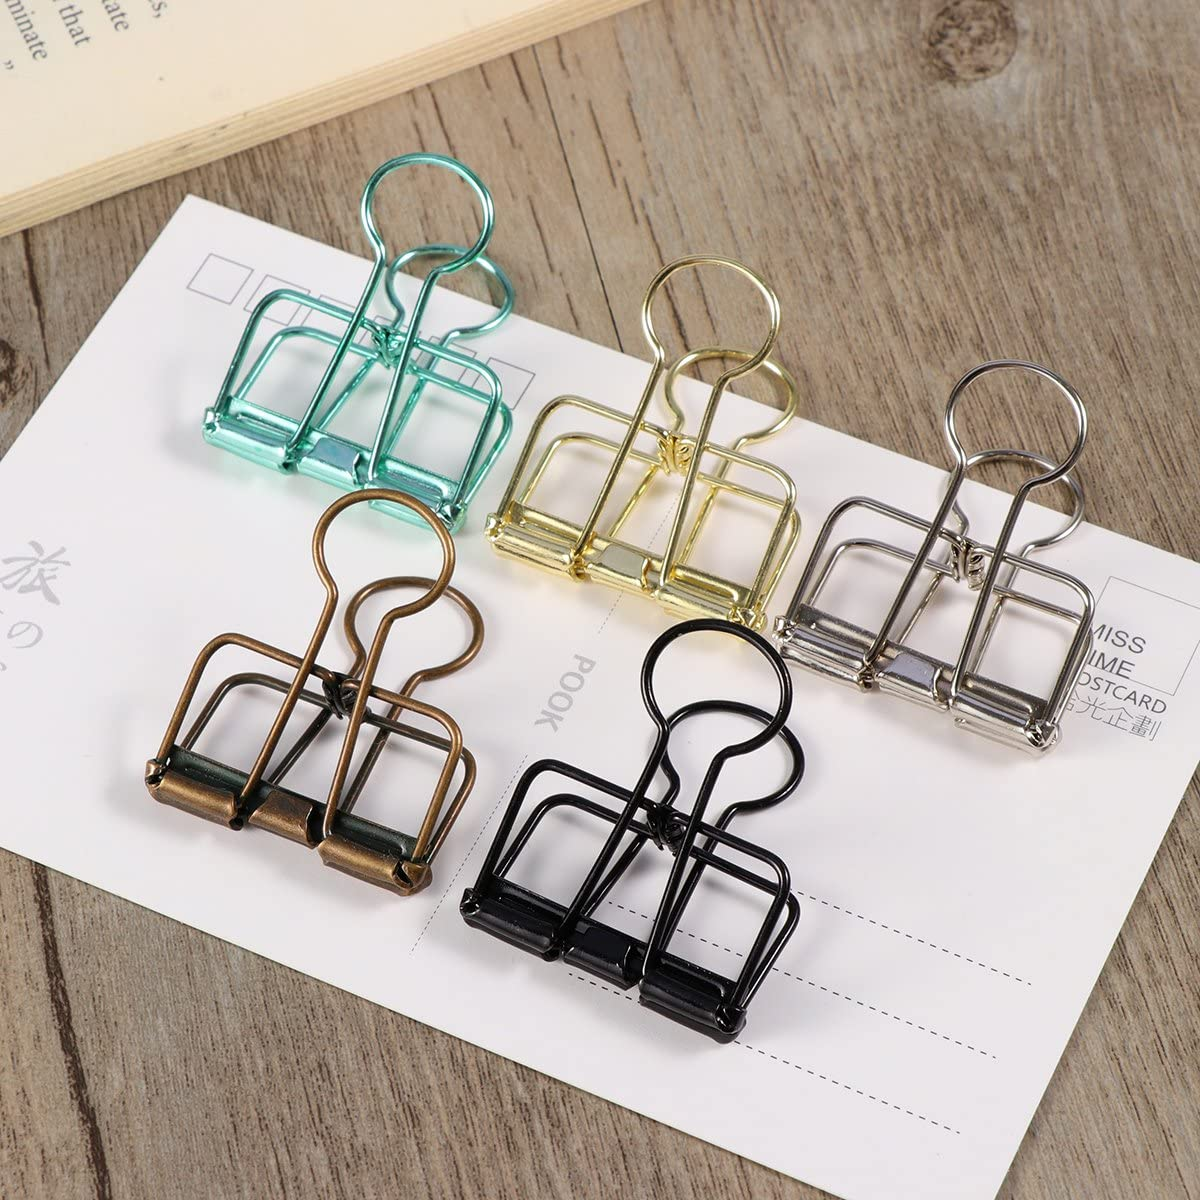 TOYMYTOY Metal Wire Binder Clips Organizers Paper Photo Clips for Office,8pcs,Medium Size